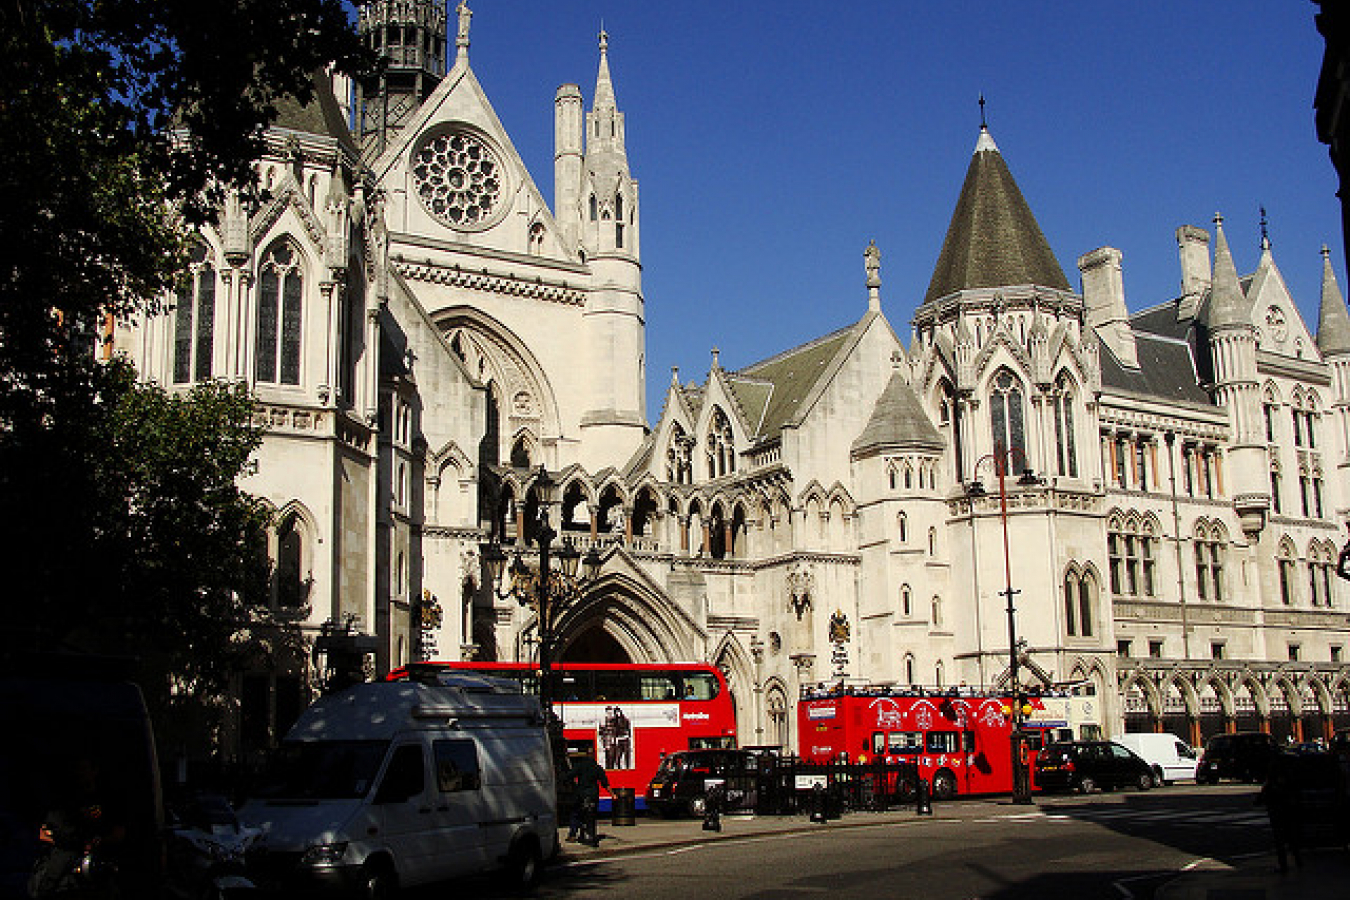 The Royal Court of Justice in the Strand